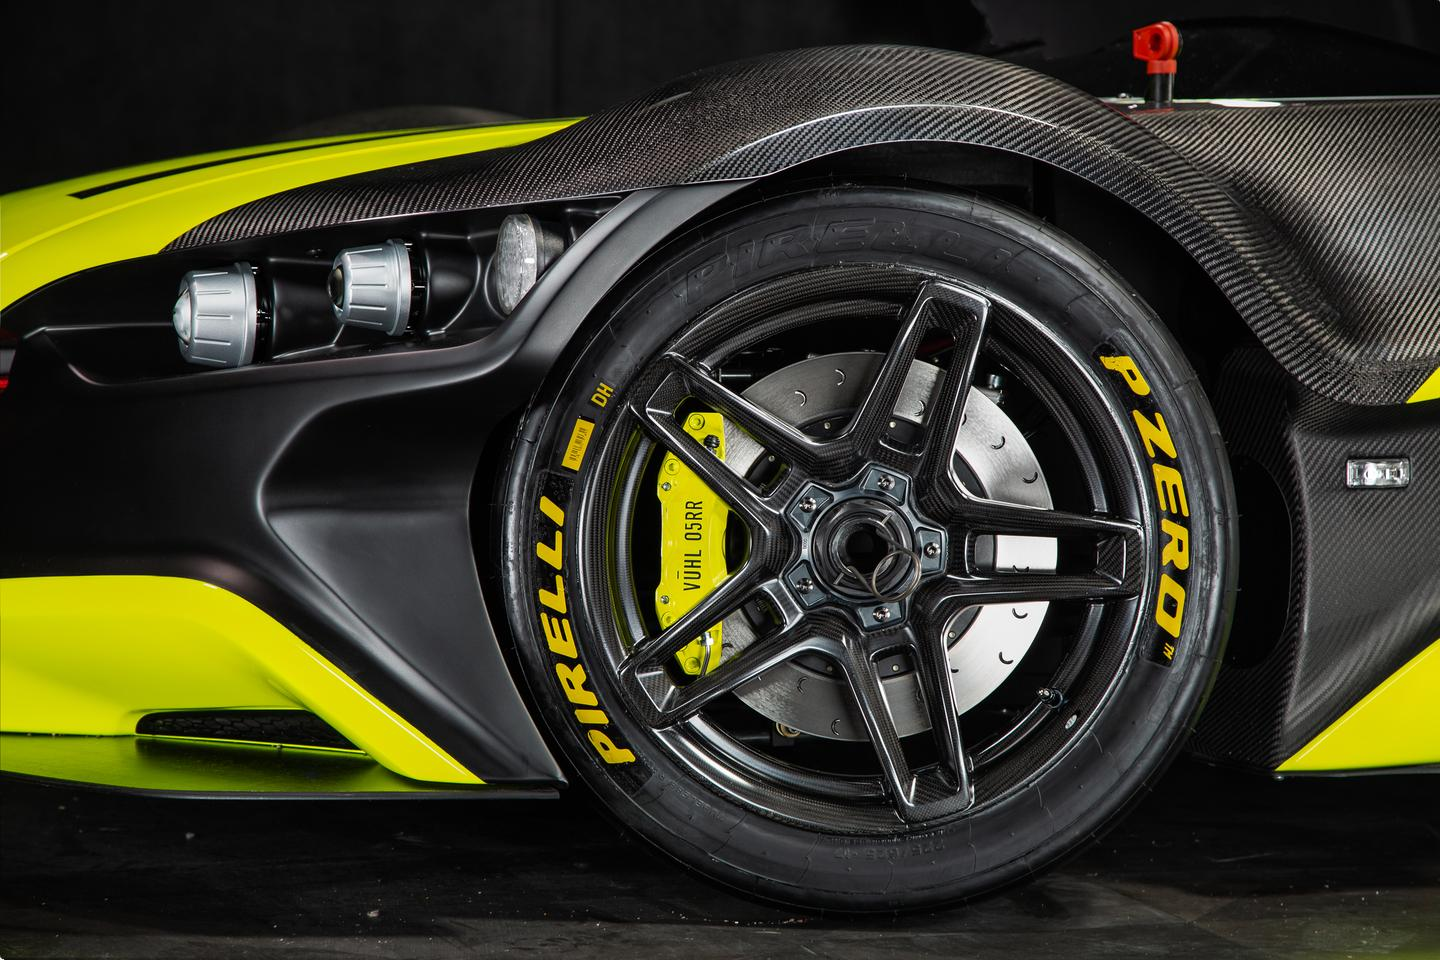 Vuhl 05RR: carbon rims and 330mm grooved brake rotors